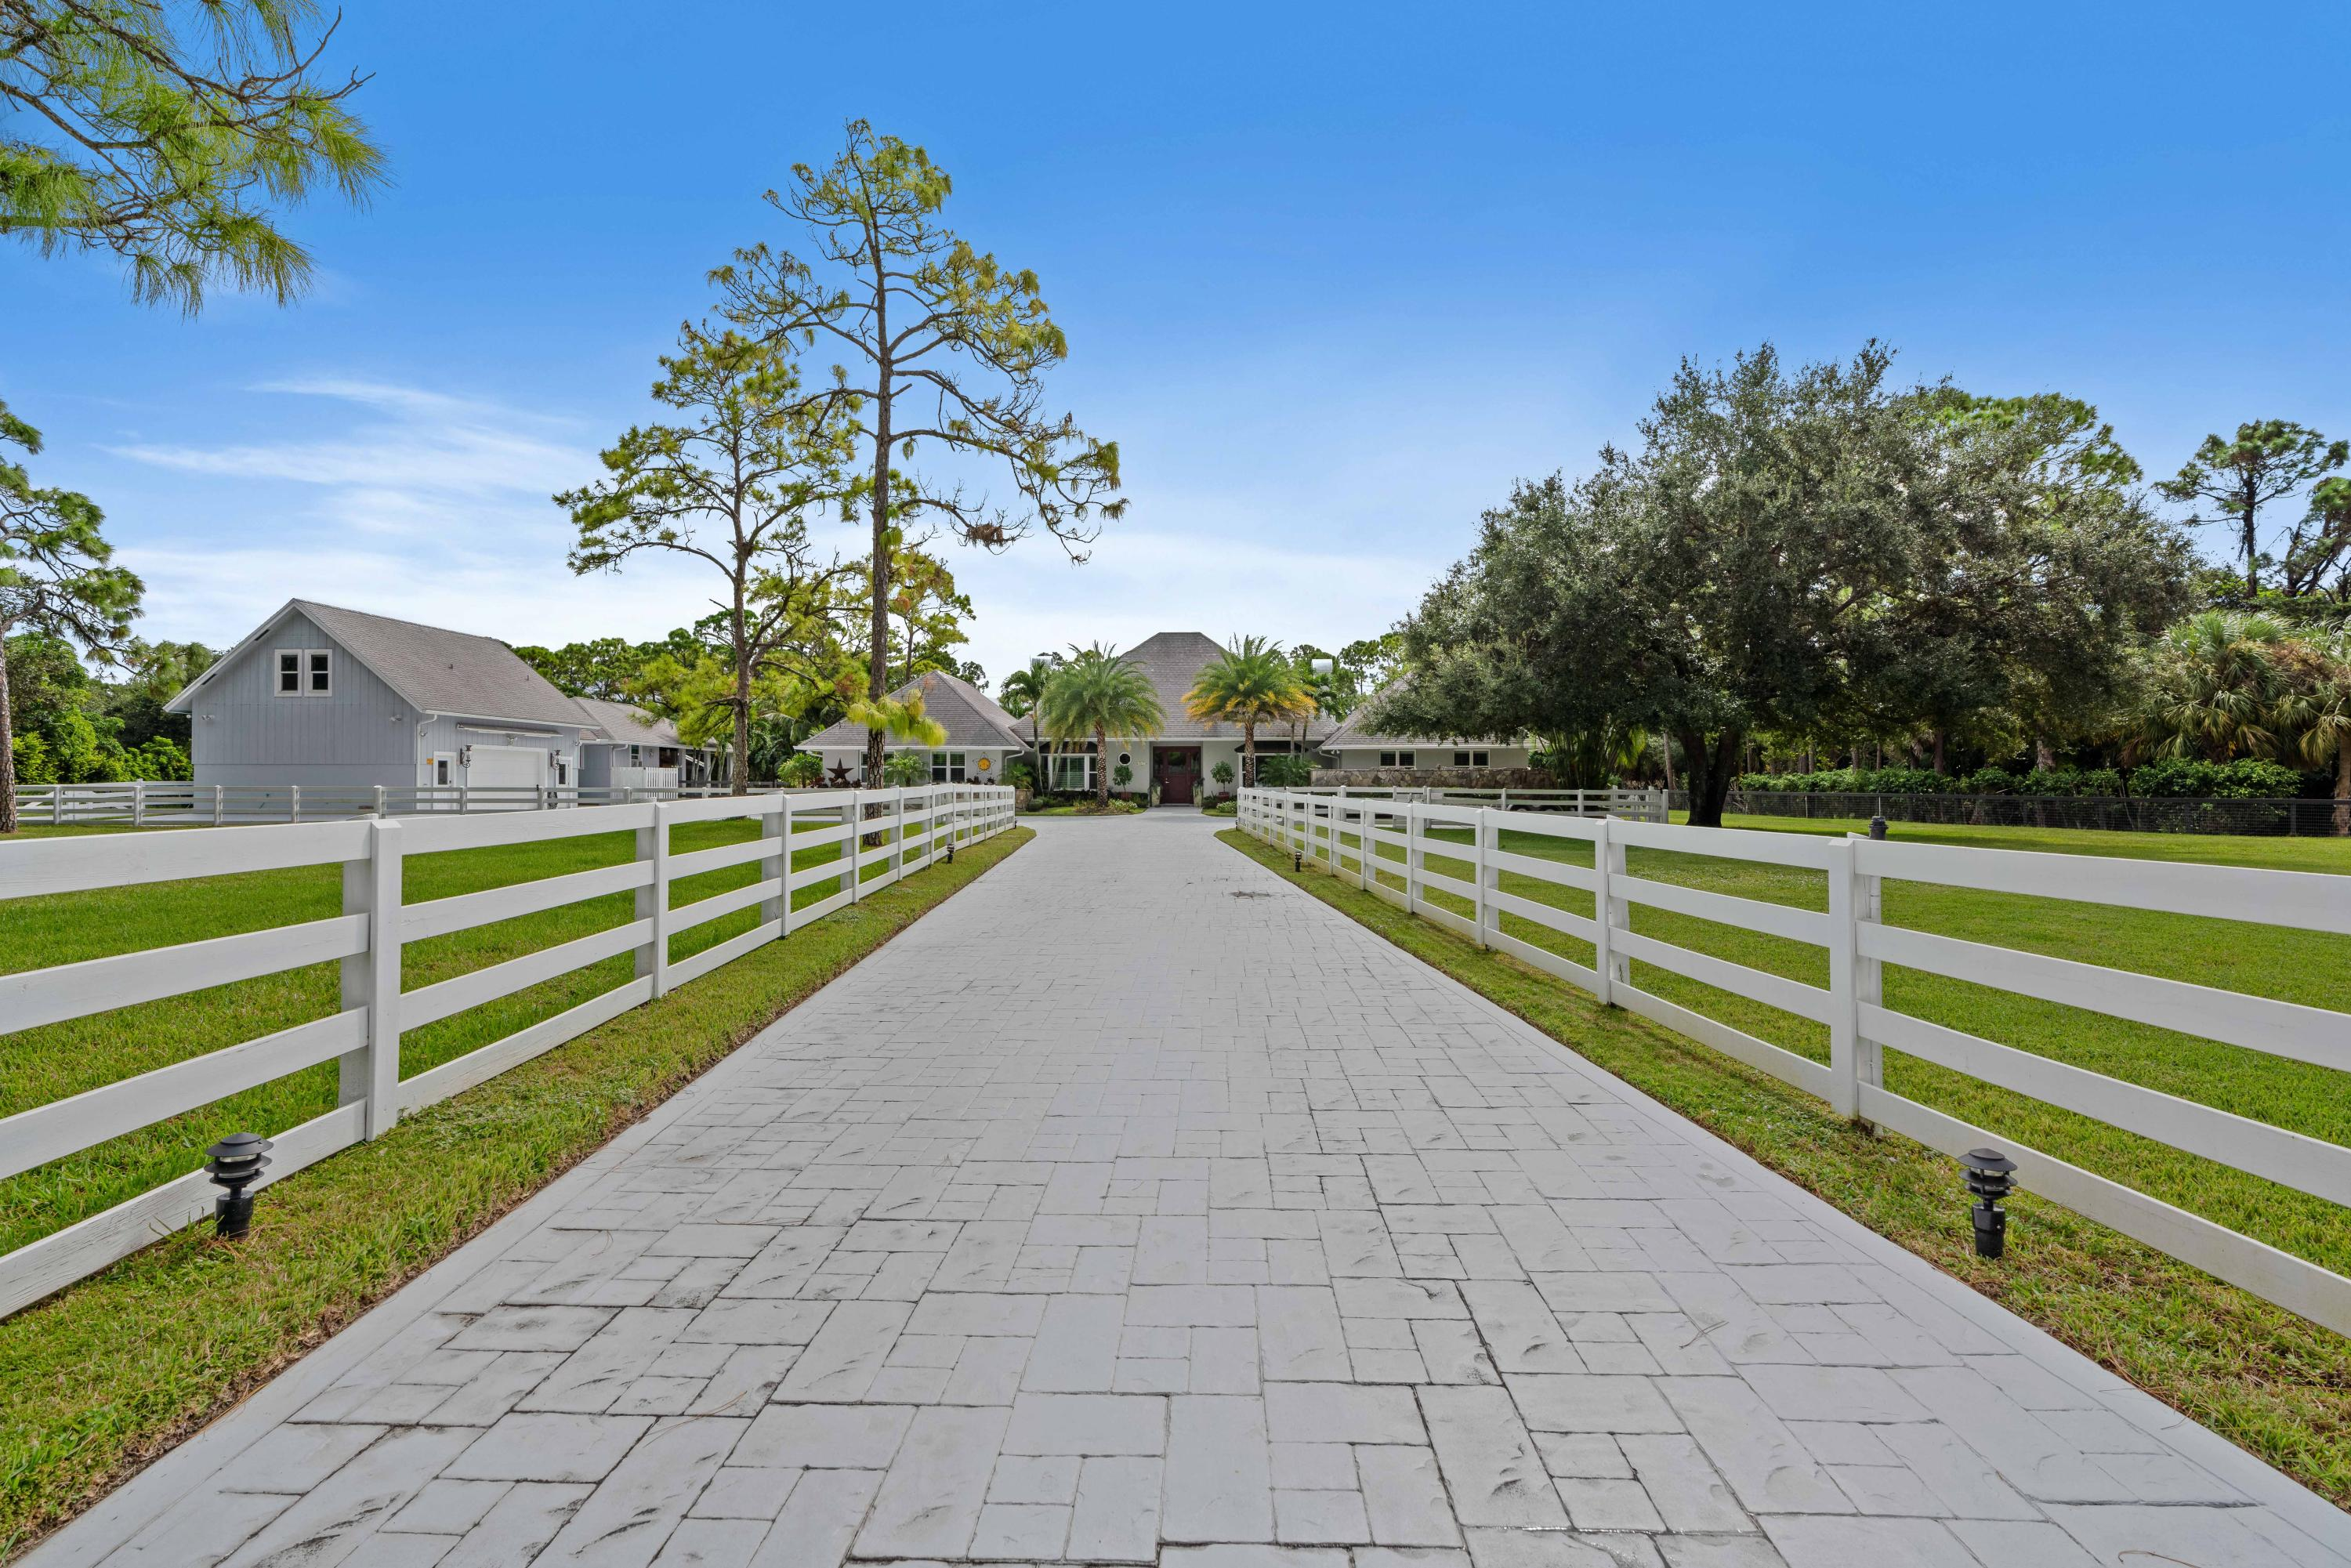 HORSESHOE ACRES HOMES FOR SALE